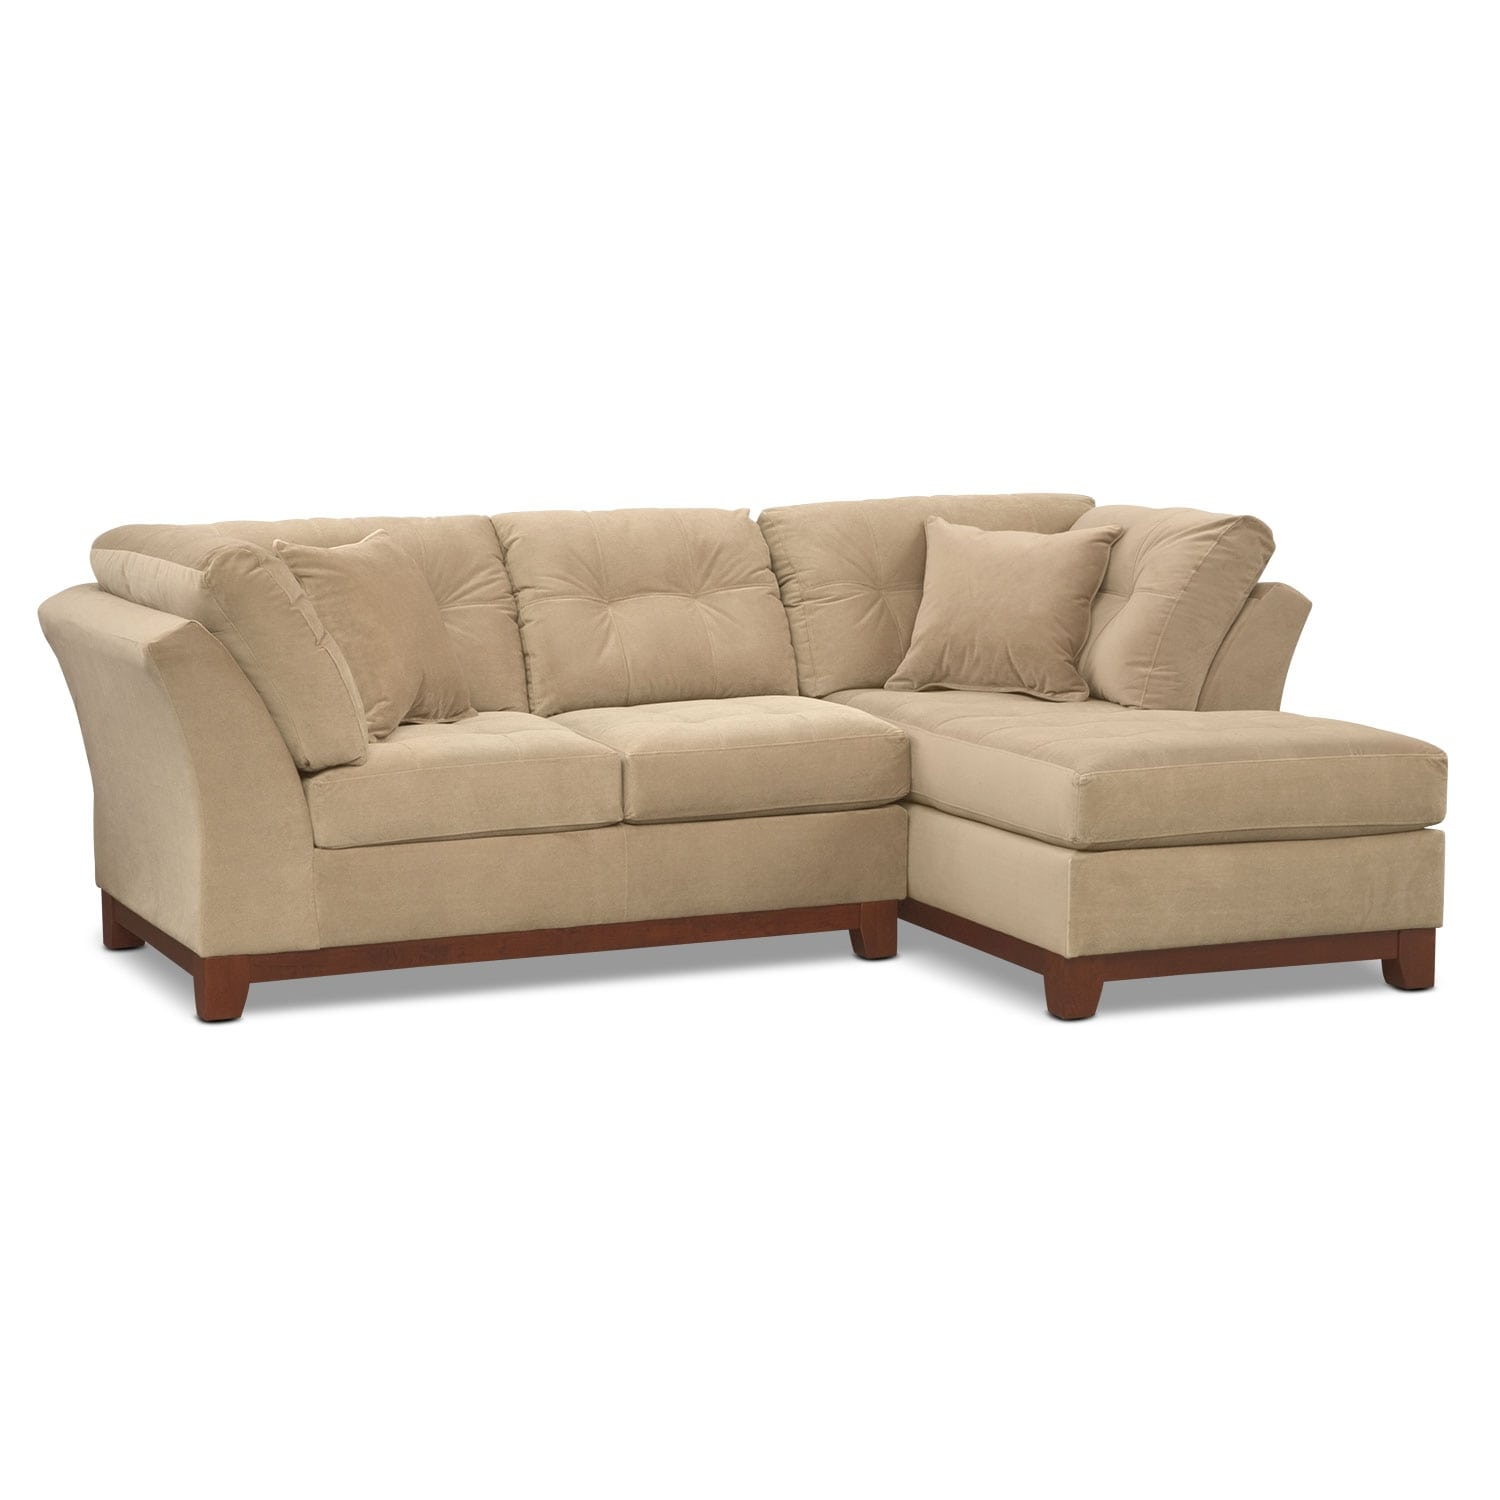 Solace 2-Piece Right-Facing Chaise Sectional - Cocoa